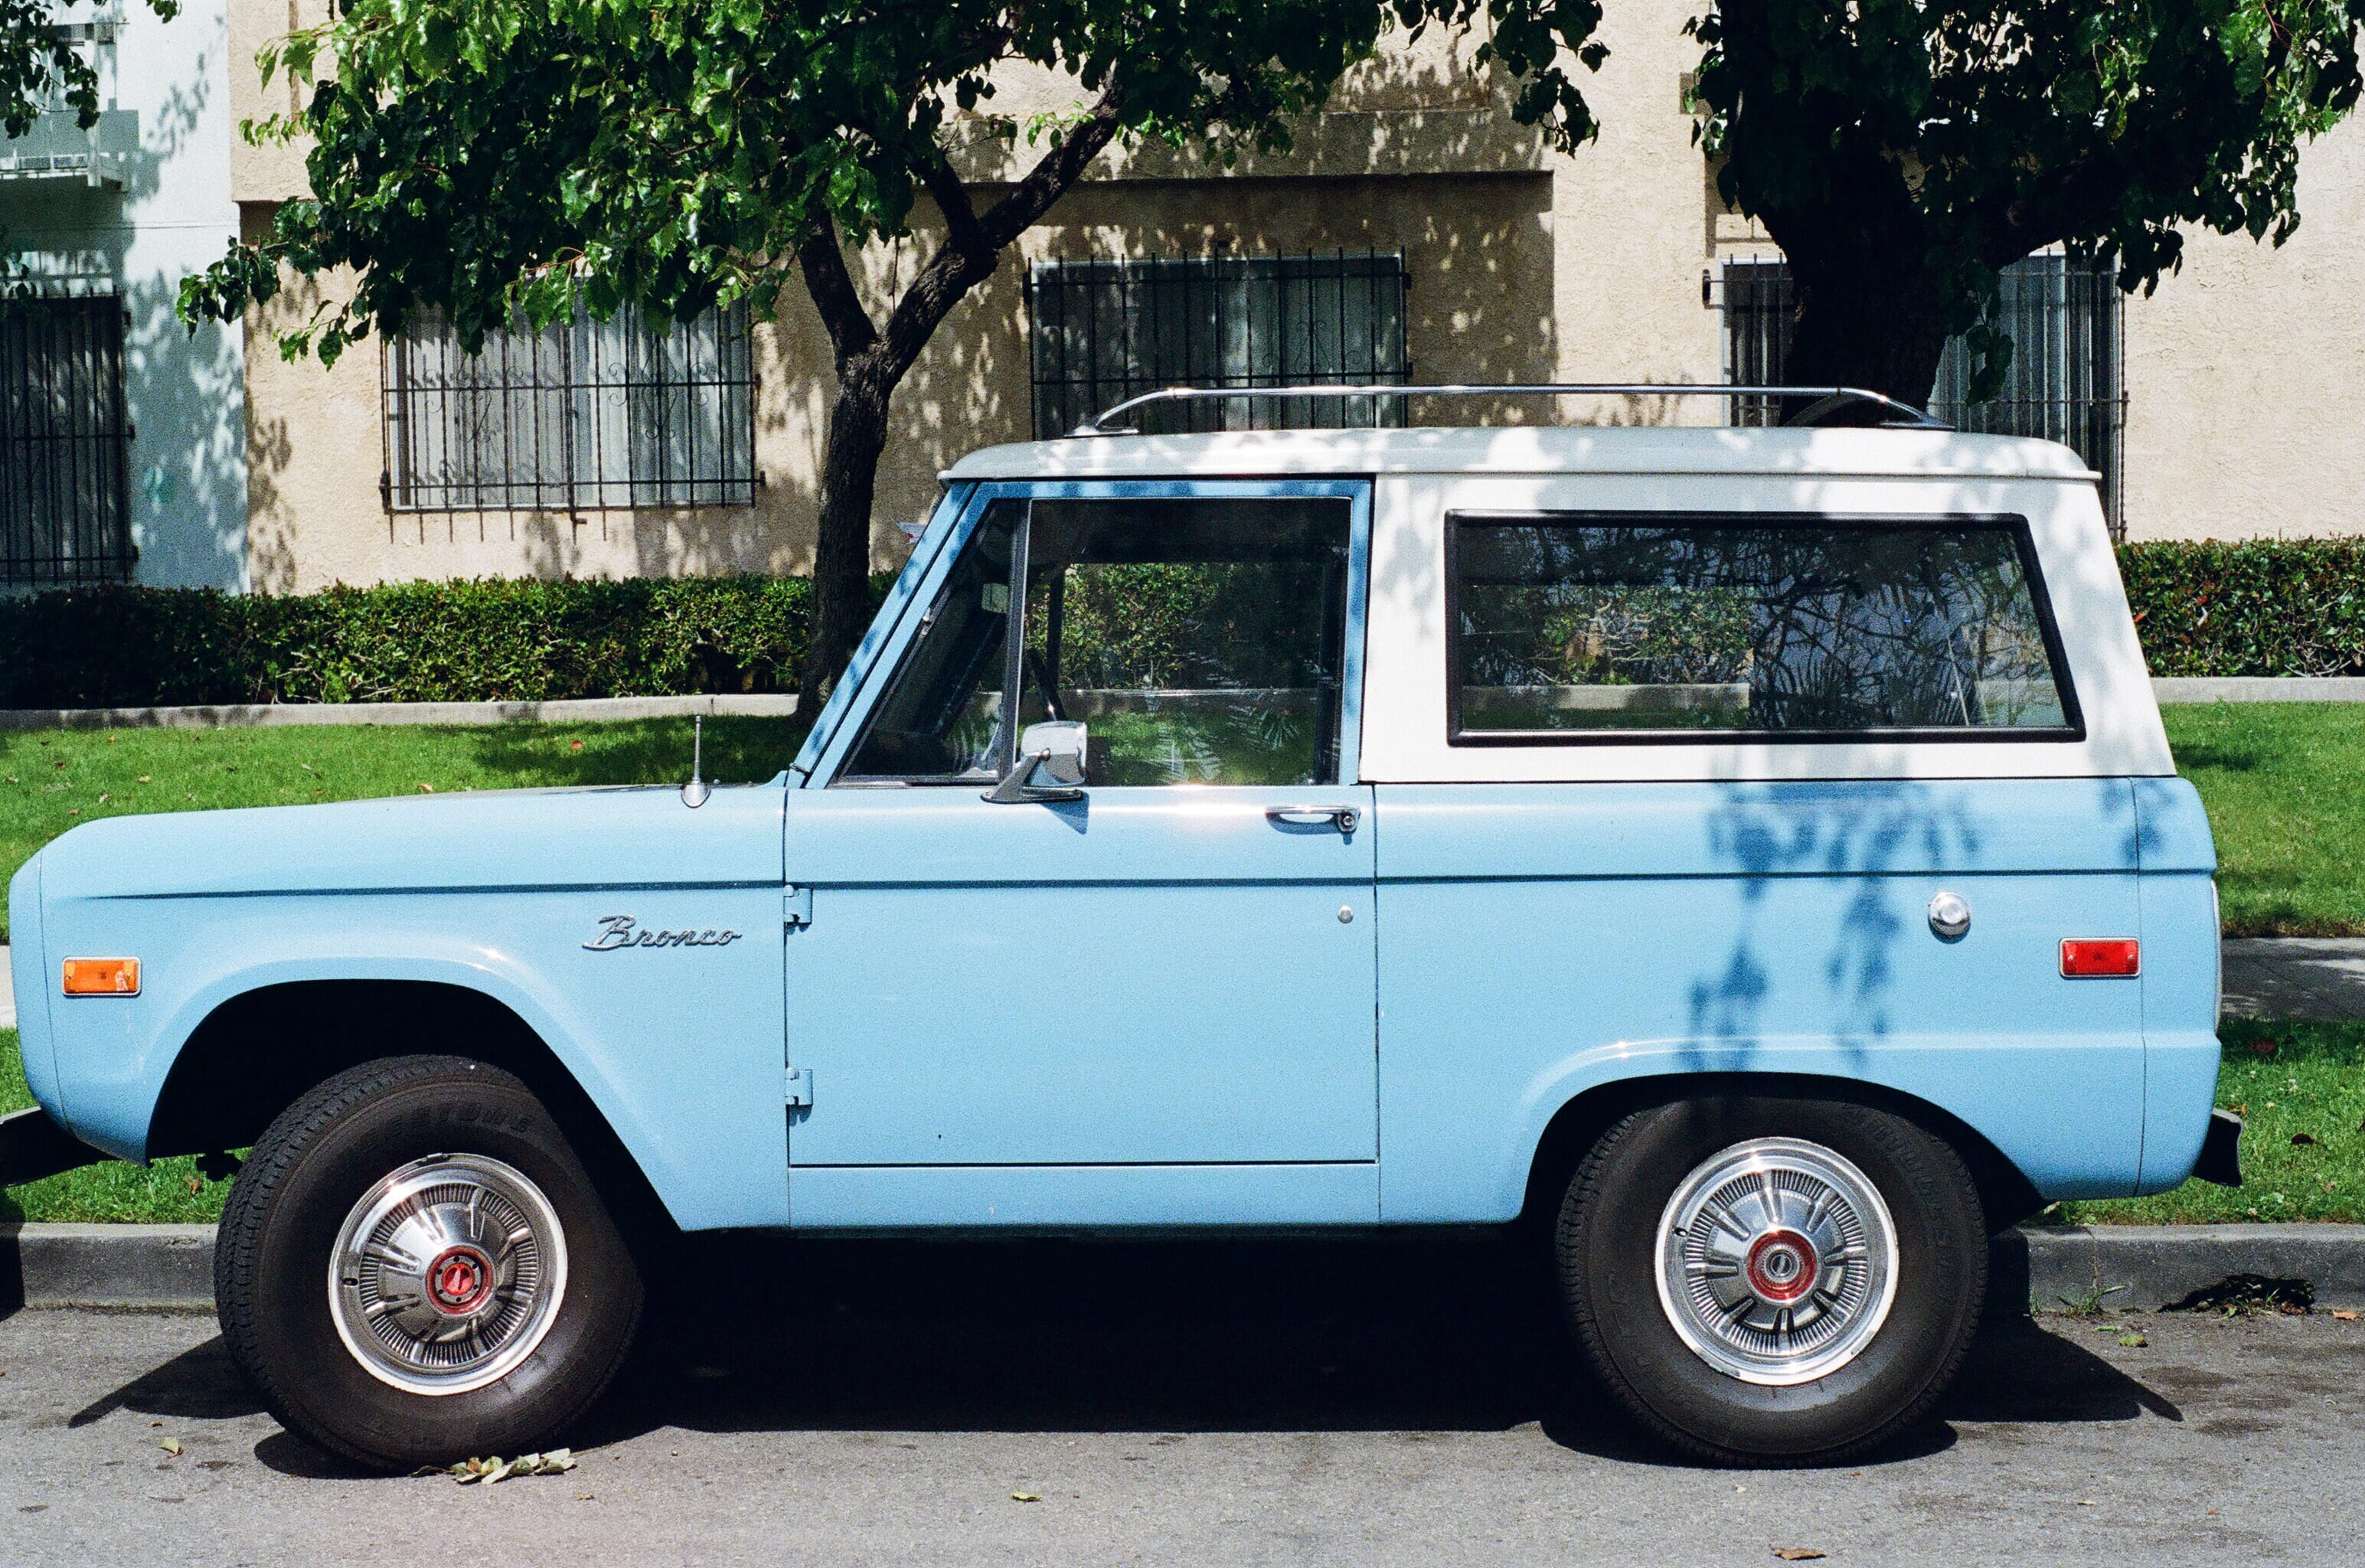 Vintage baby blue Ford Bronco parked on a the street side